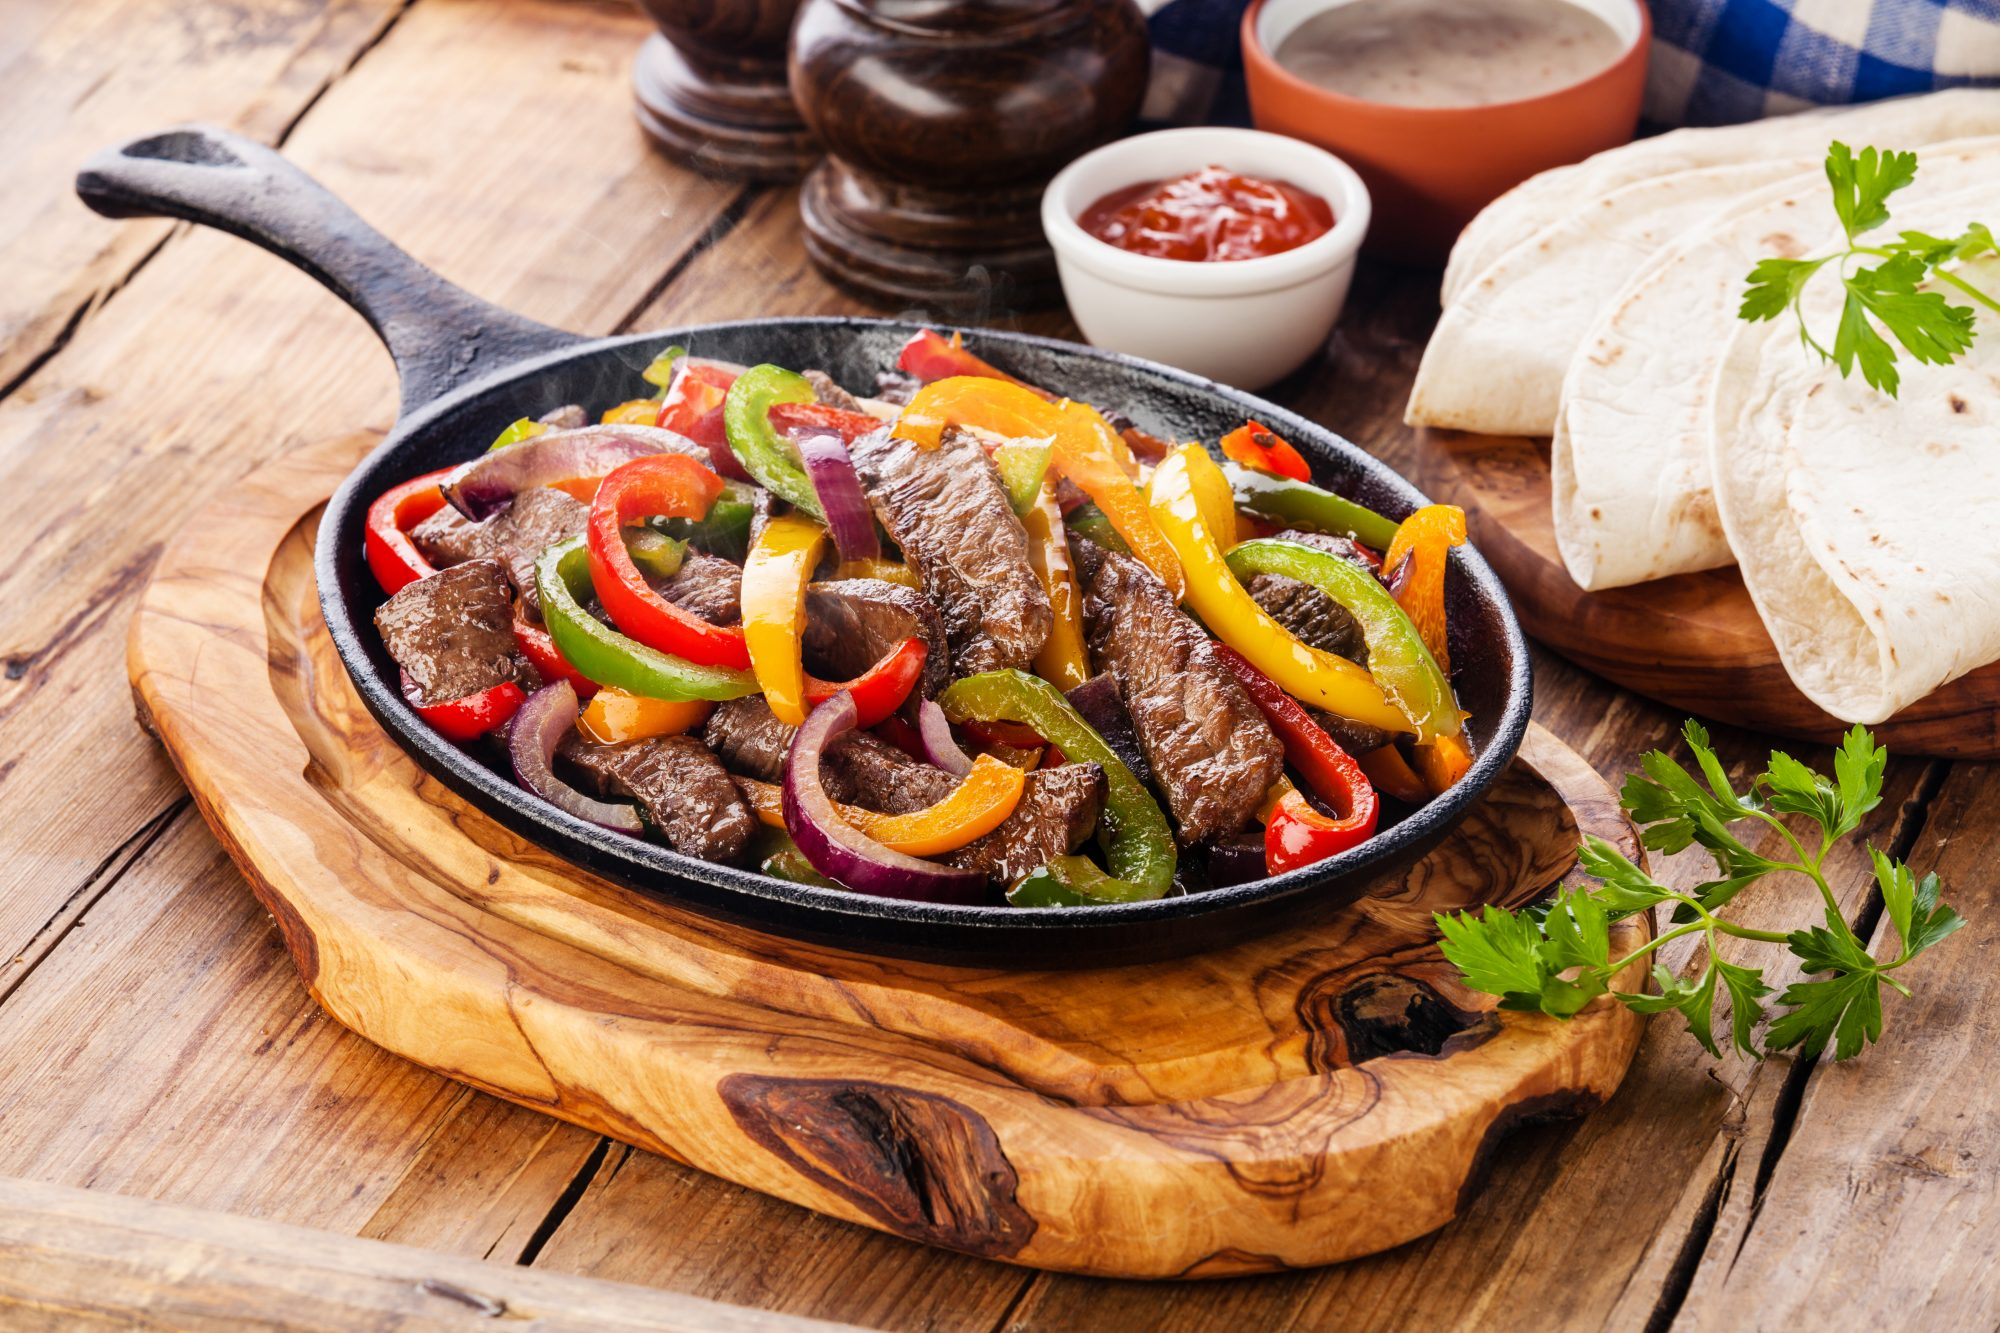 Texas Man Arrested for Stealing $1.2 Million Worth of Fajitas